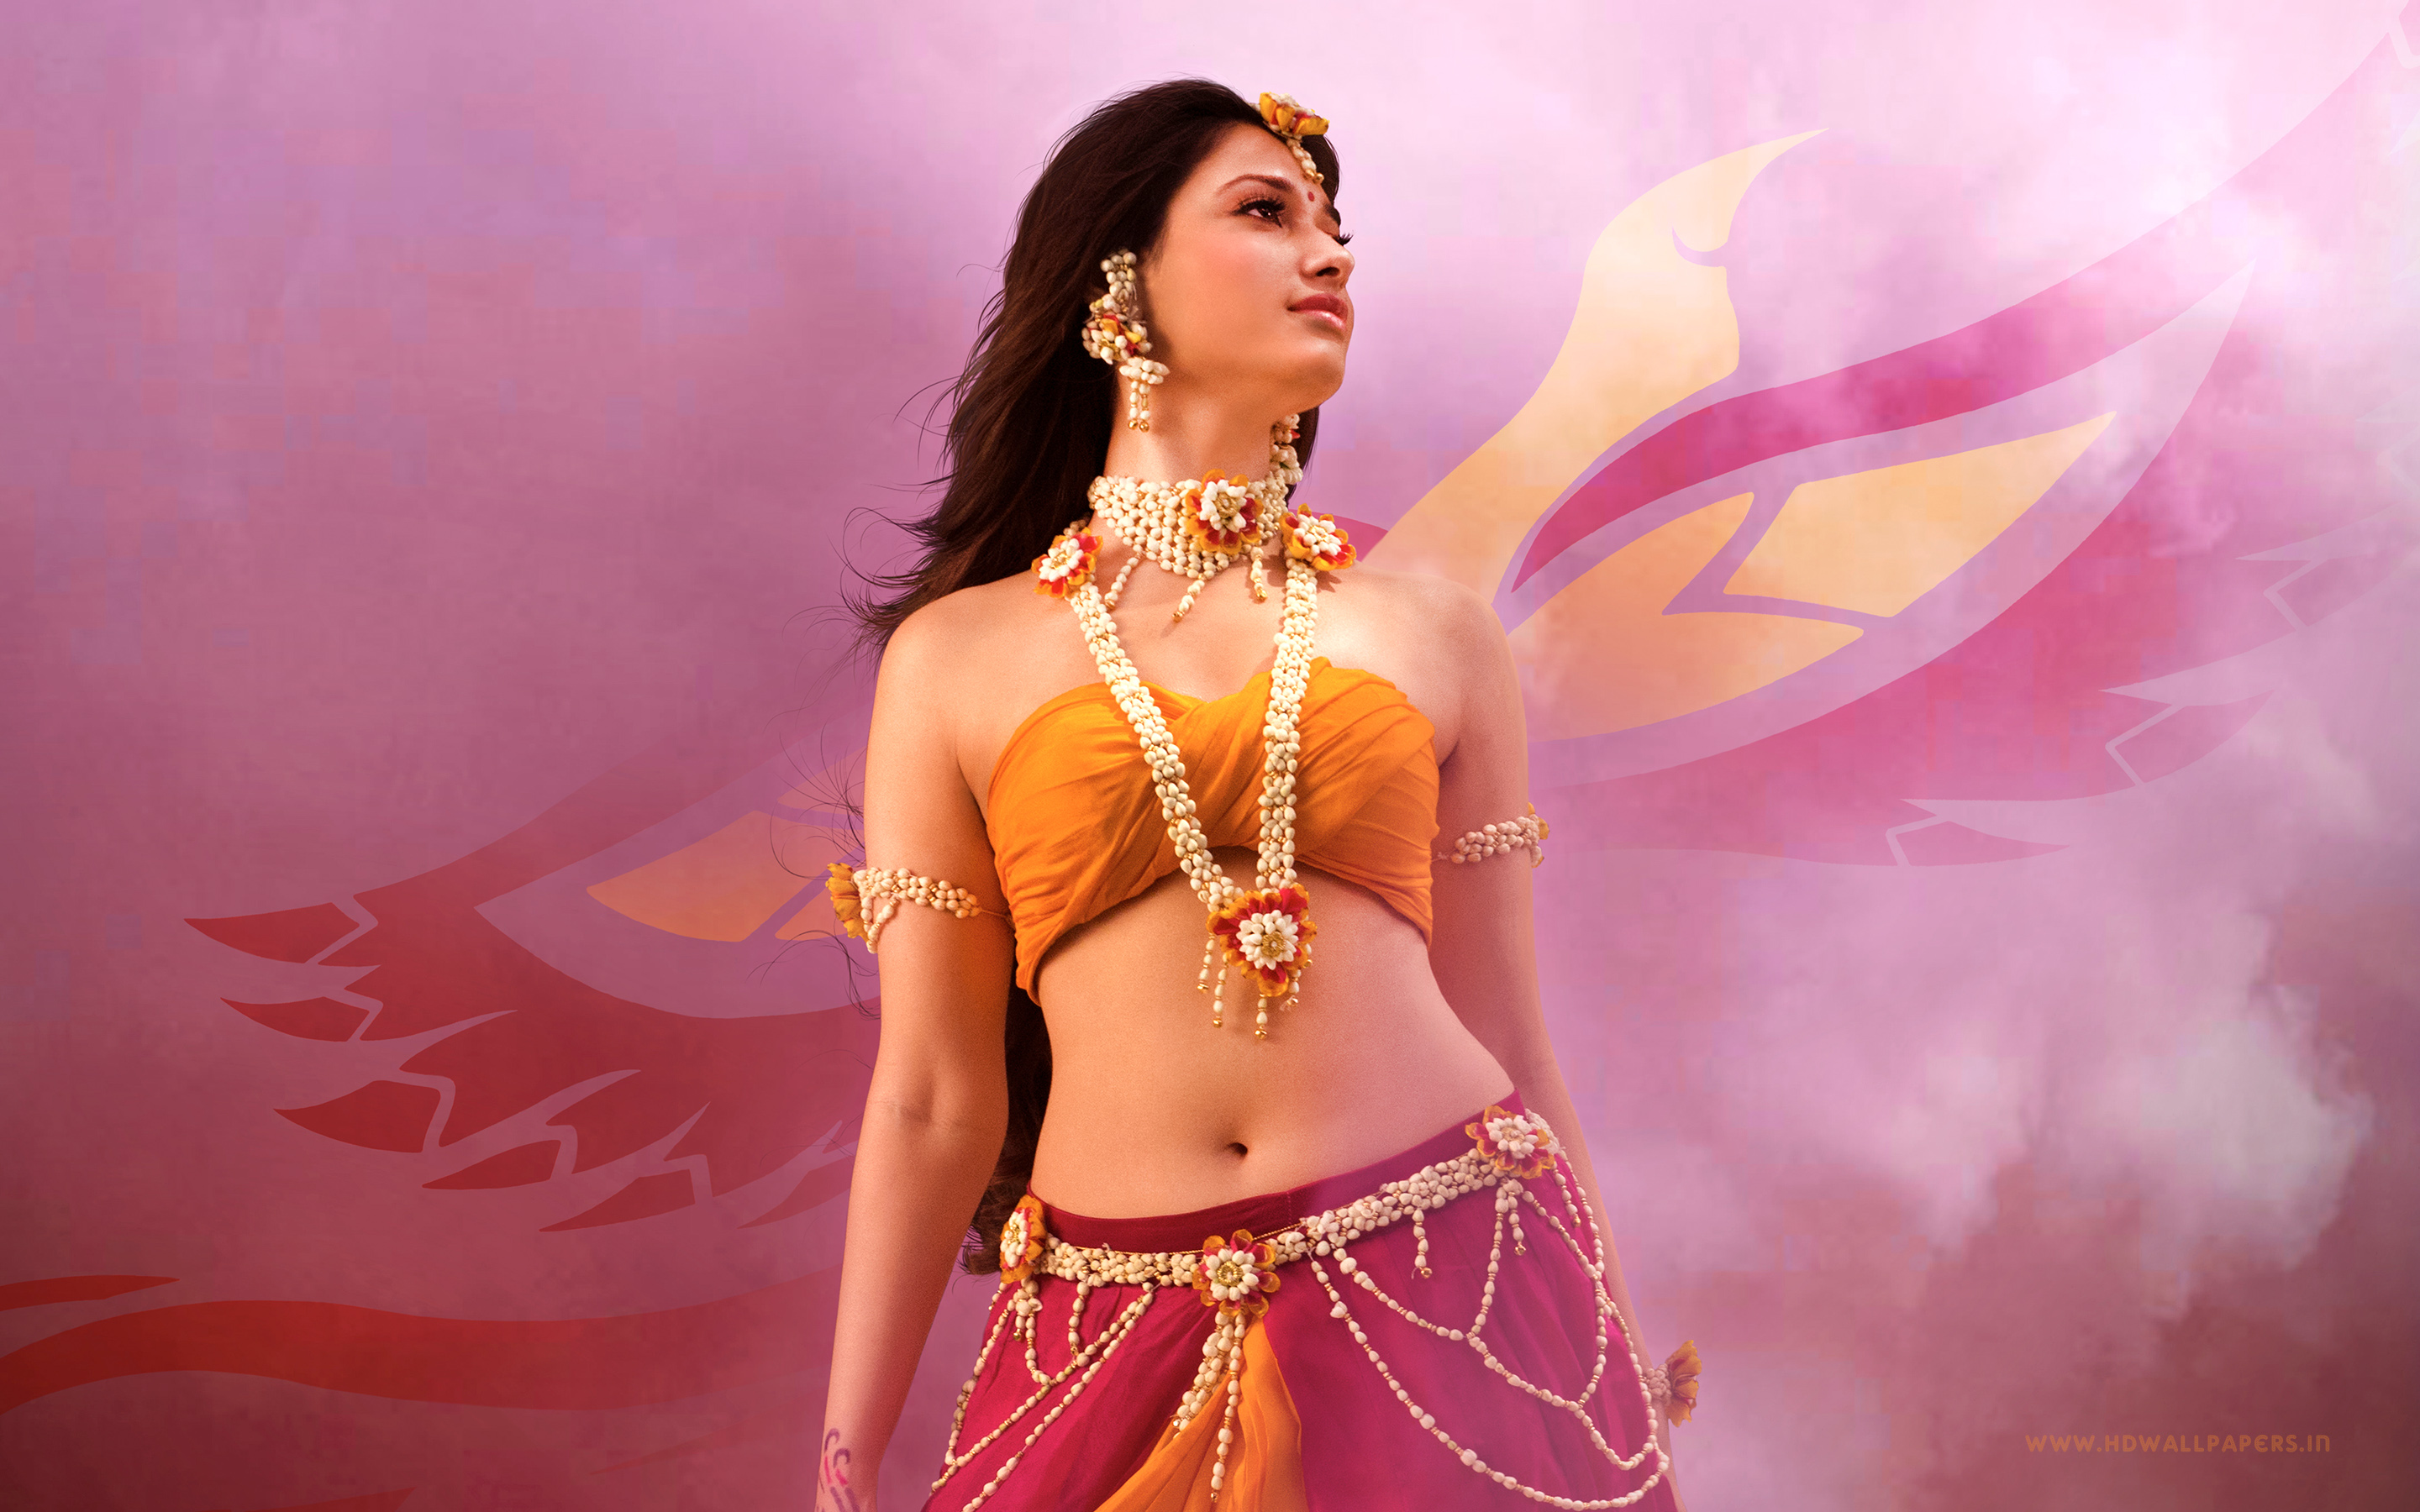 Hd wallpaper bahubali 2 - Tamanna Avantika Bahubali Wallpaper Prabhas In Bahubali Hd